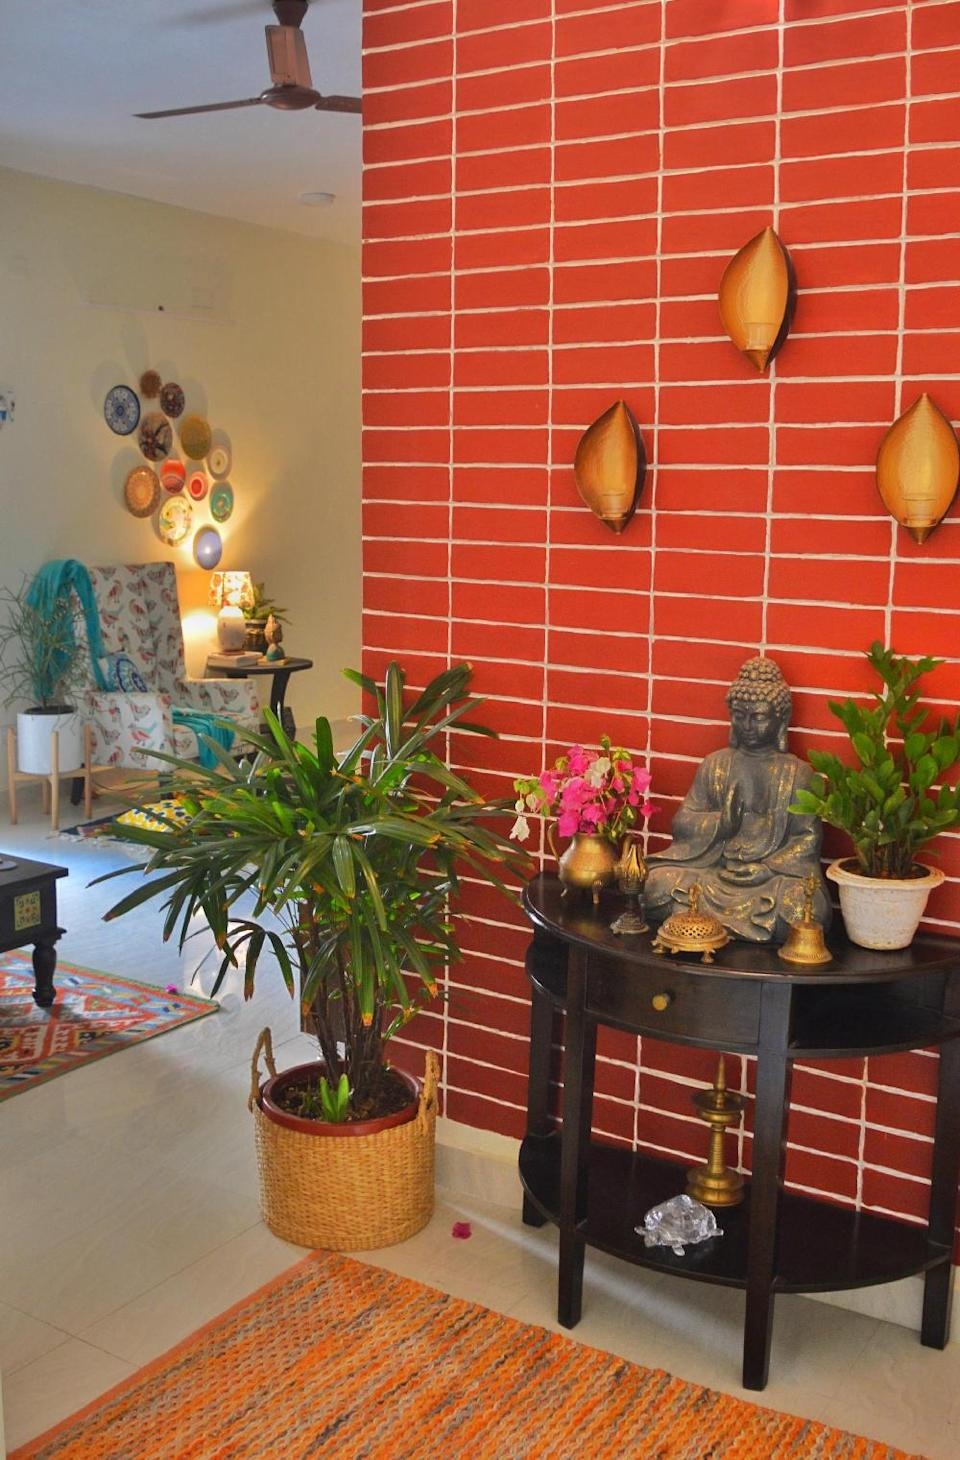 "The foyer is blissful with a statue of the Buddha, potted plants, a traditional oil lamp and wall-mounted t-light-holders. ""This space gives me lots of positive vibes,"" says Preeti."